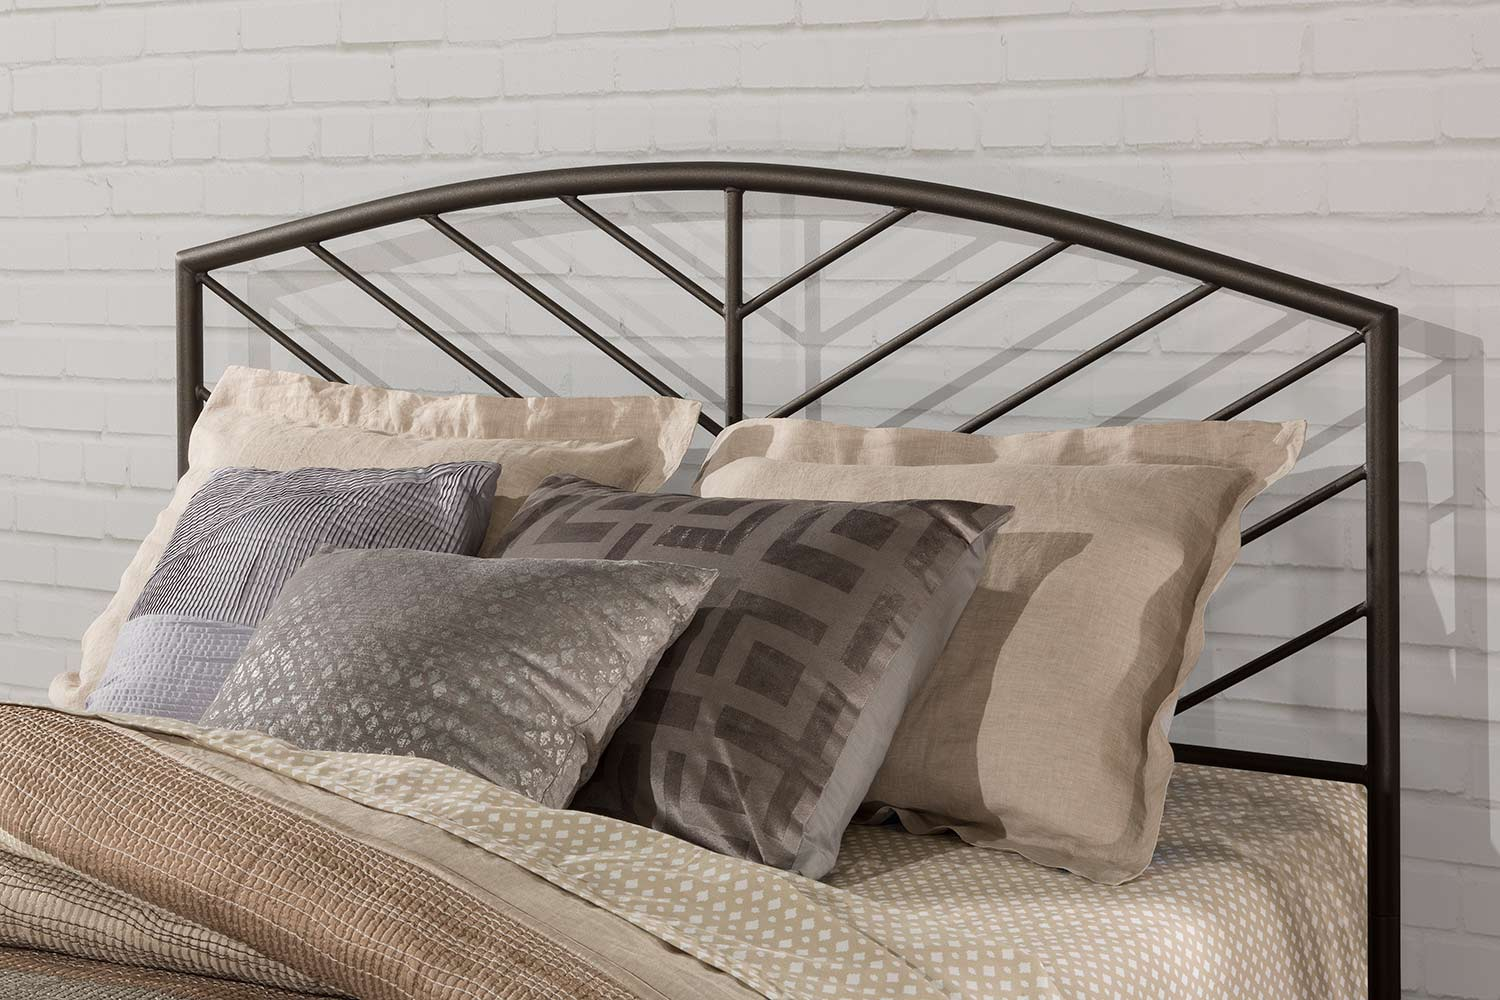 Hillsdale Essex Metal Headboard with Frame - Speckled Pewter